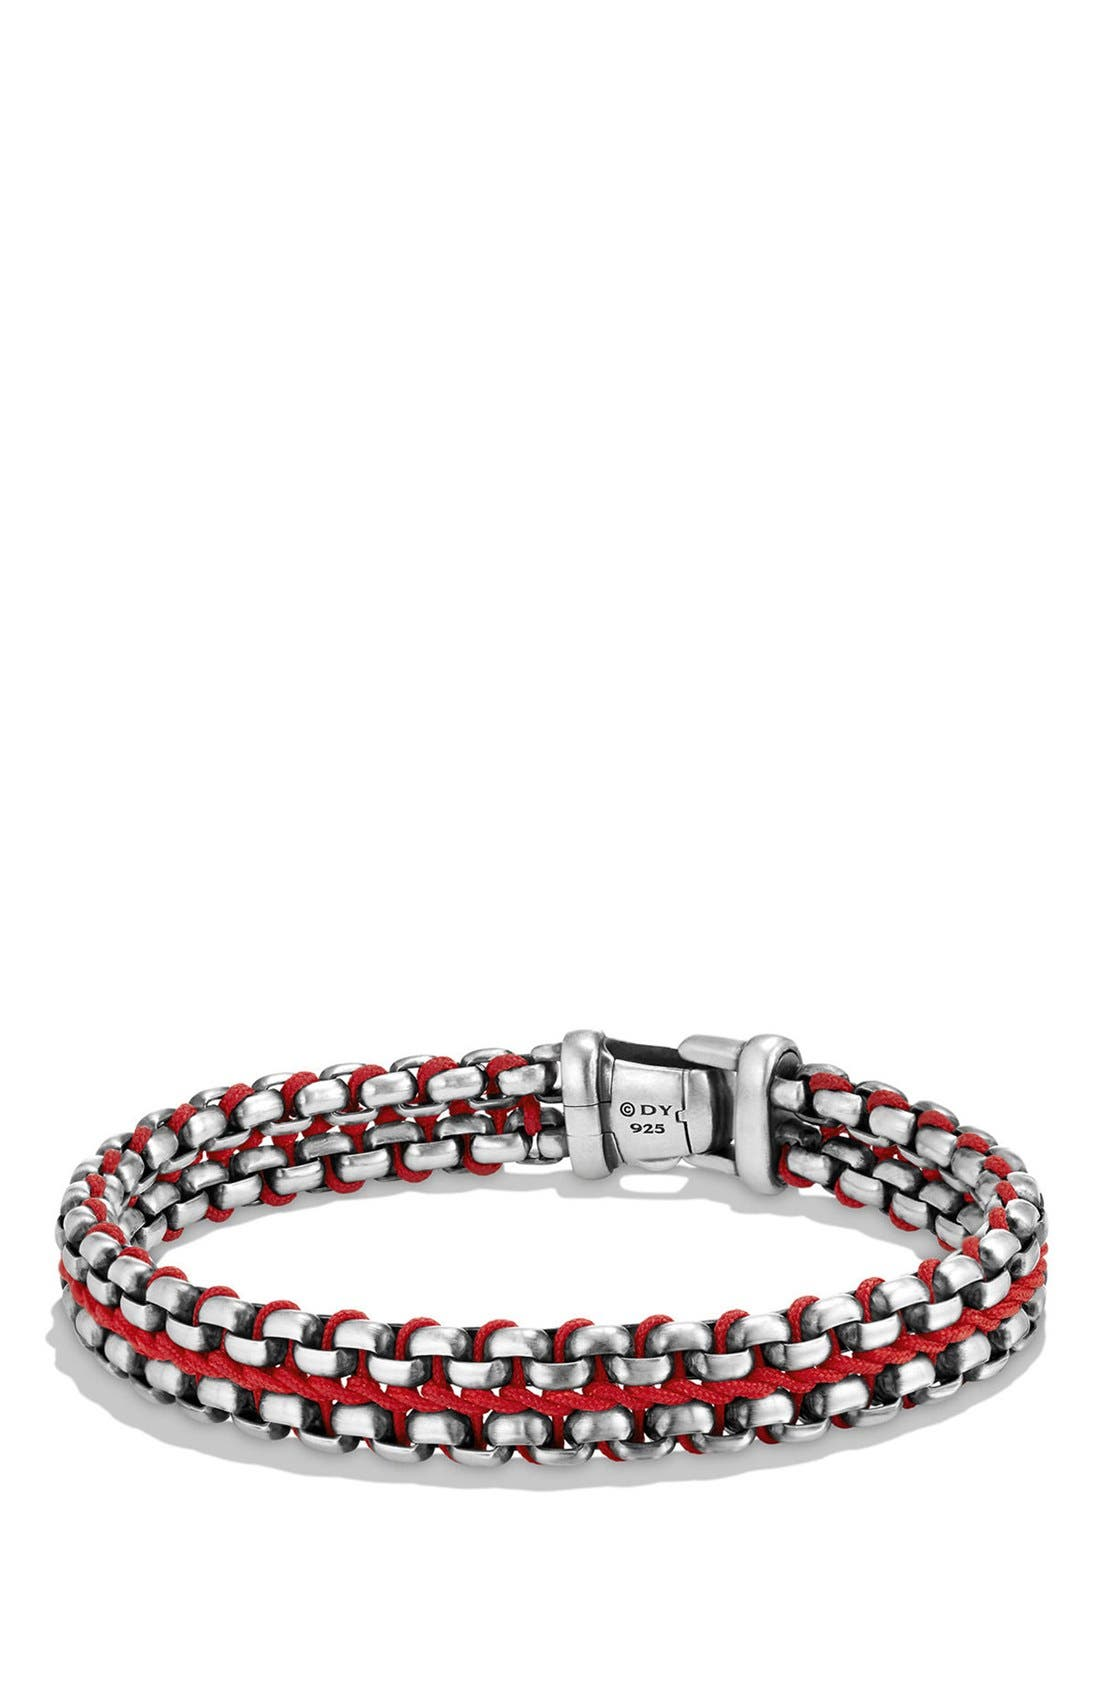 Alternate Image 1 Selected - David Yurman 'Chain' Woven Box Chain Bracelet